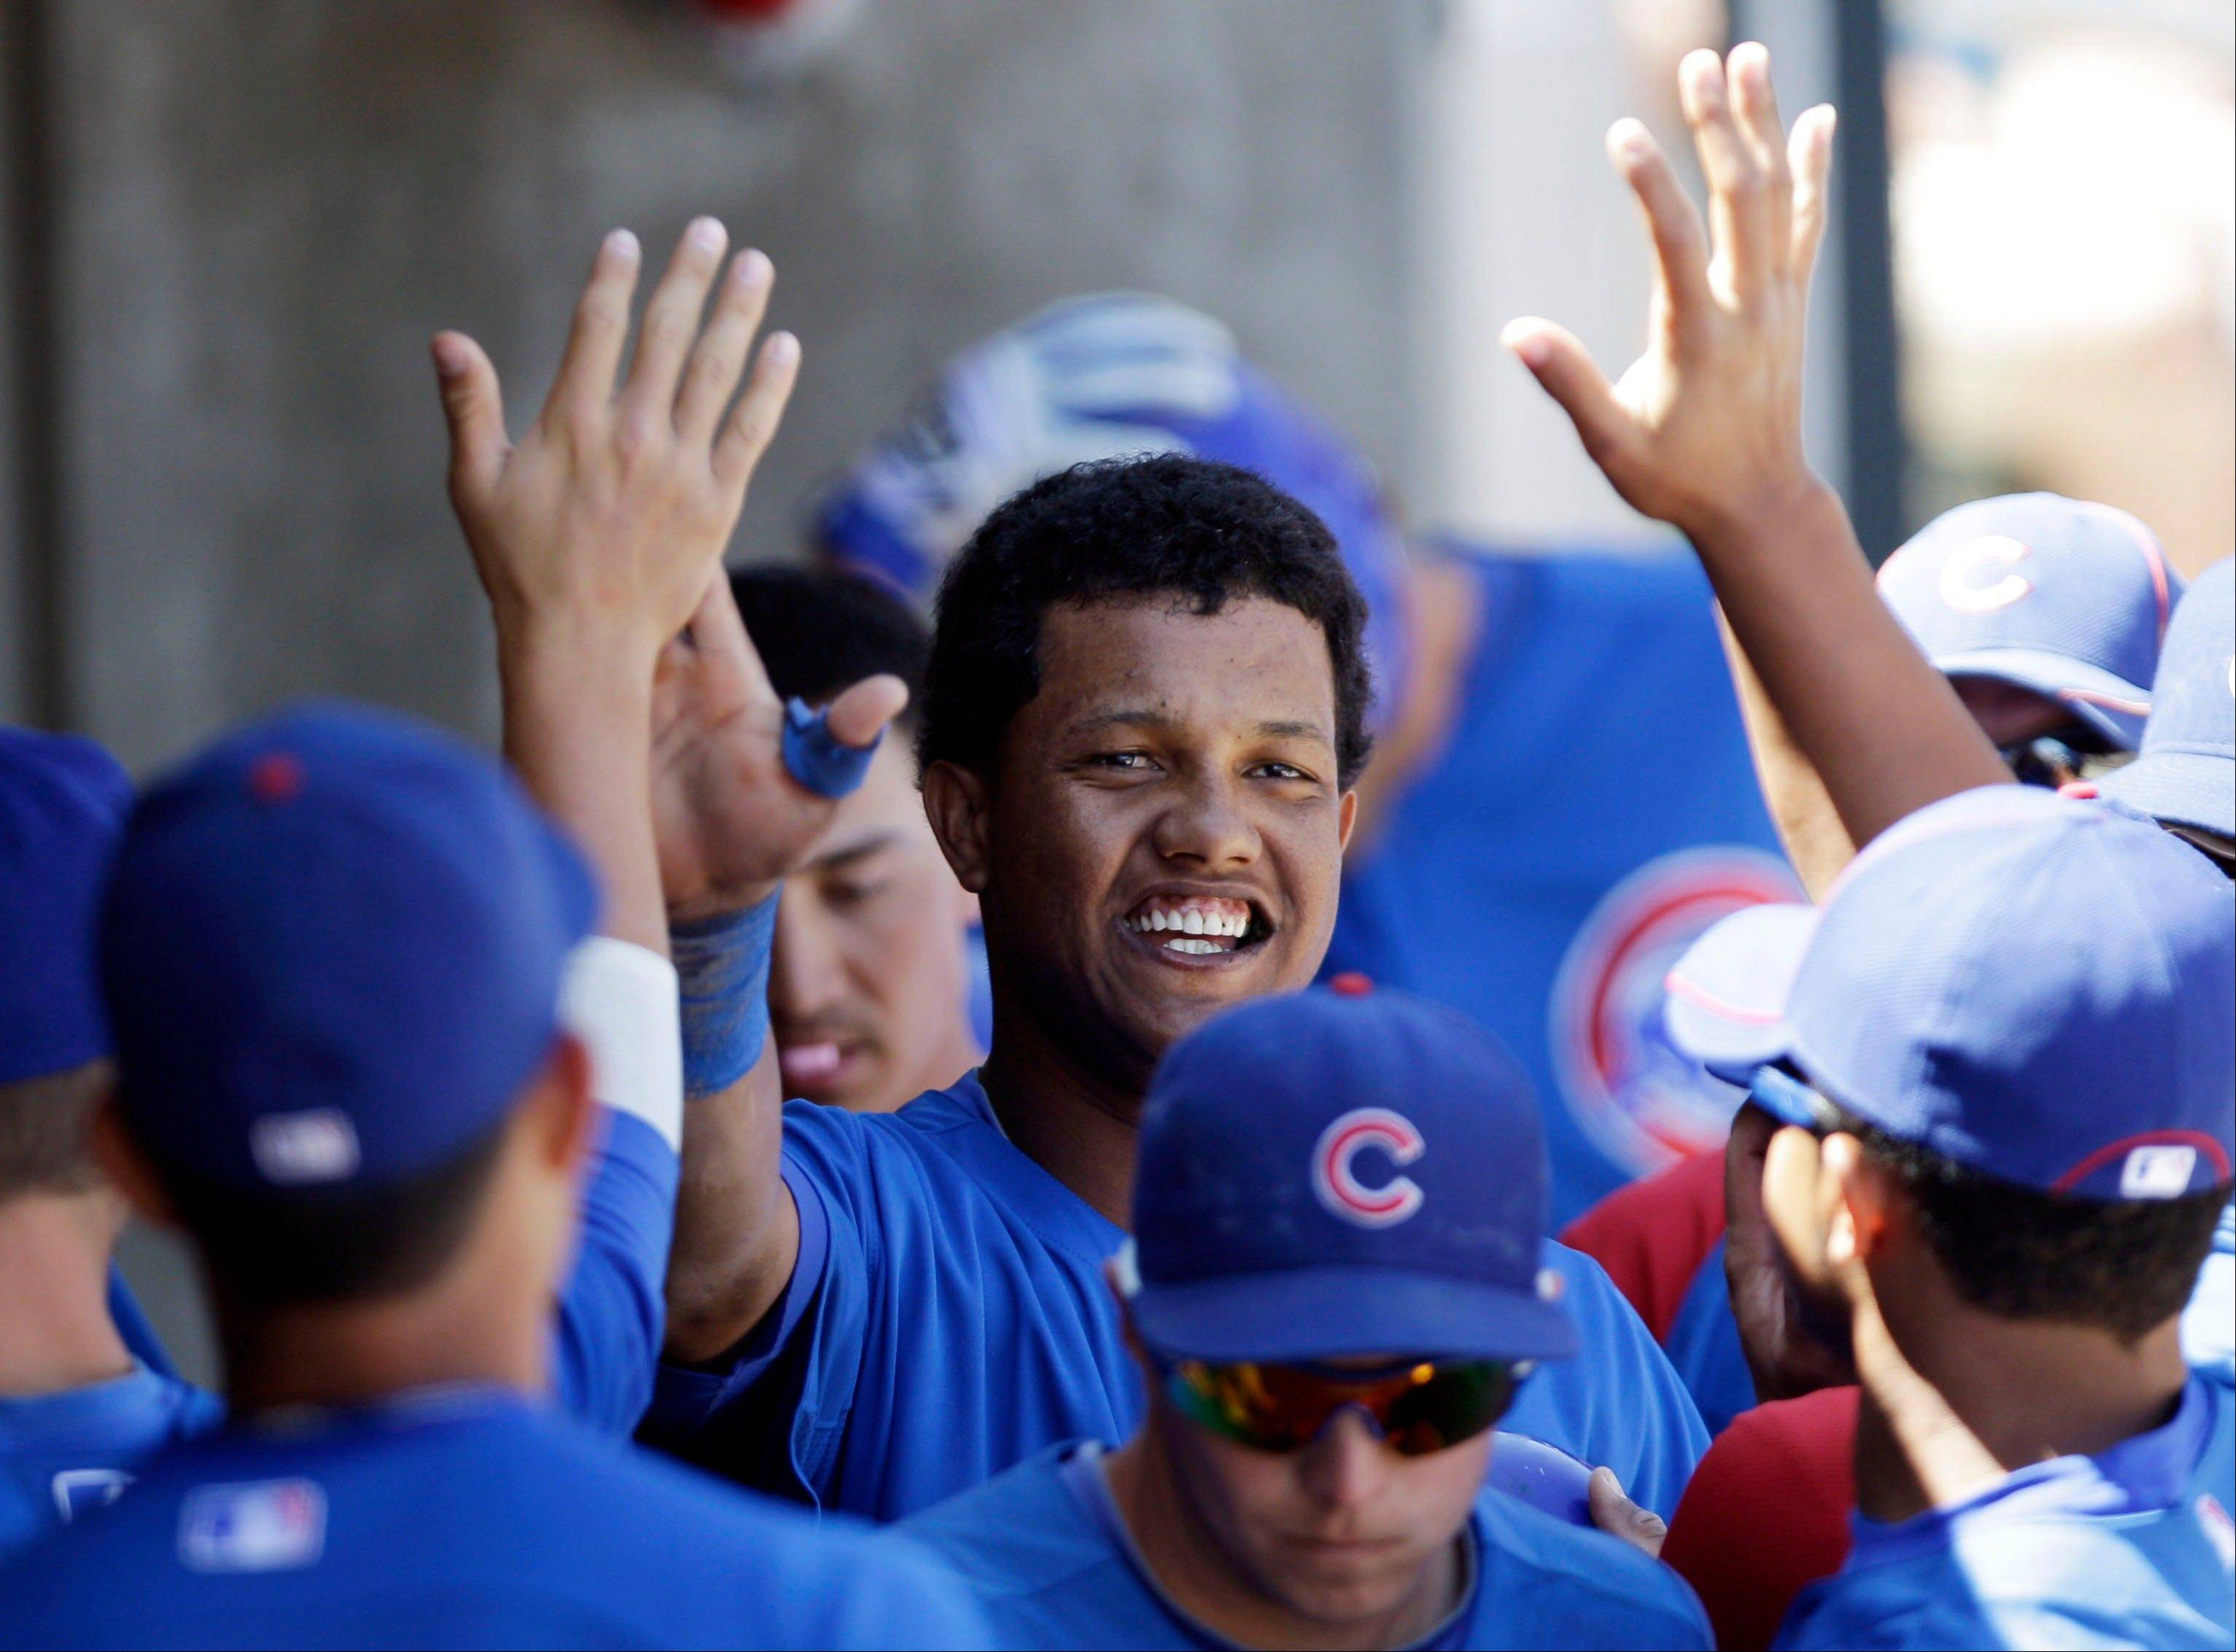 Are all of Starlin Castro's troubles behind him? That's one of the questions facing the Cubs this season as they wait to see if Castro, center, can become a perennial all-star on the field and a good representative off the field.